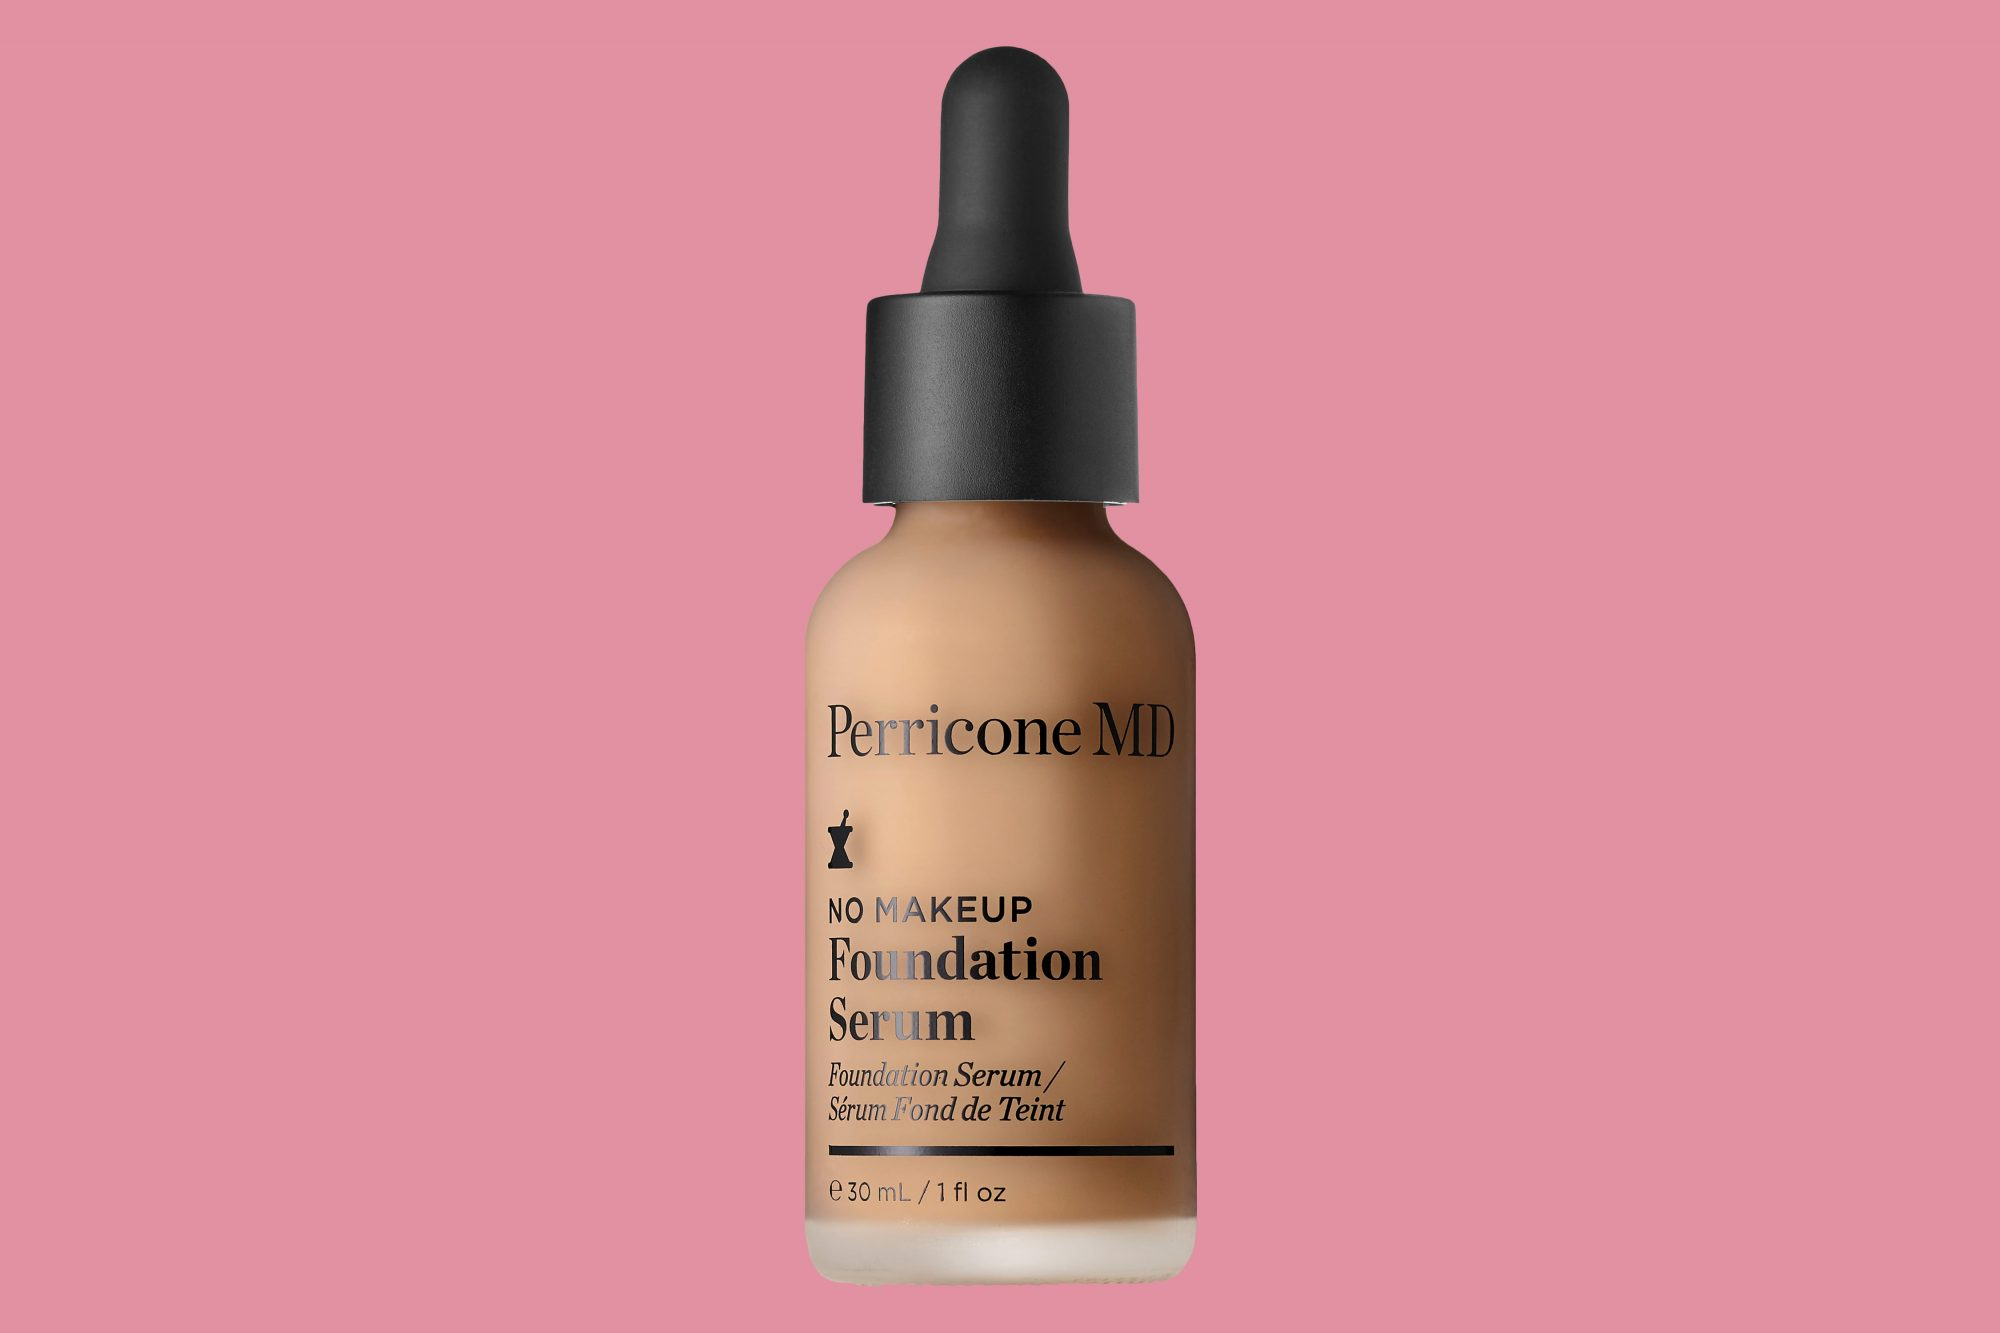 Perricone MD No Makeup Foundation Serum Broad Spectrum SPF 20